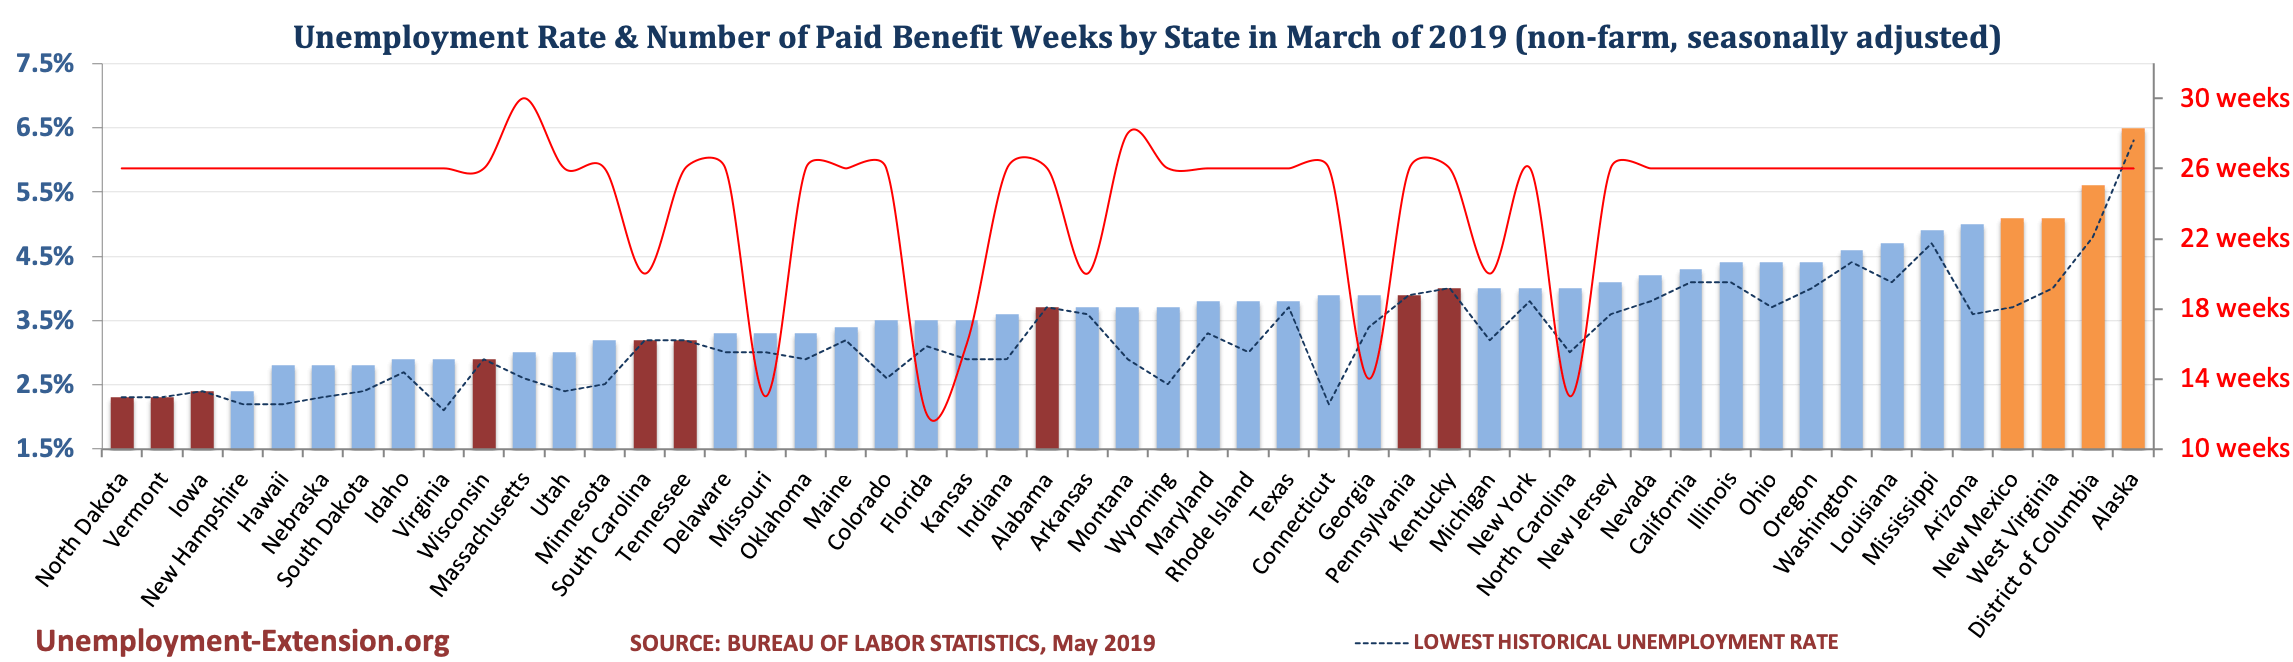 Unemployment Rate and Number of Paid Unemployment Benefit weeks by State (non-farm, seasonally adjusted) in March of 2019